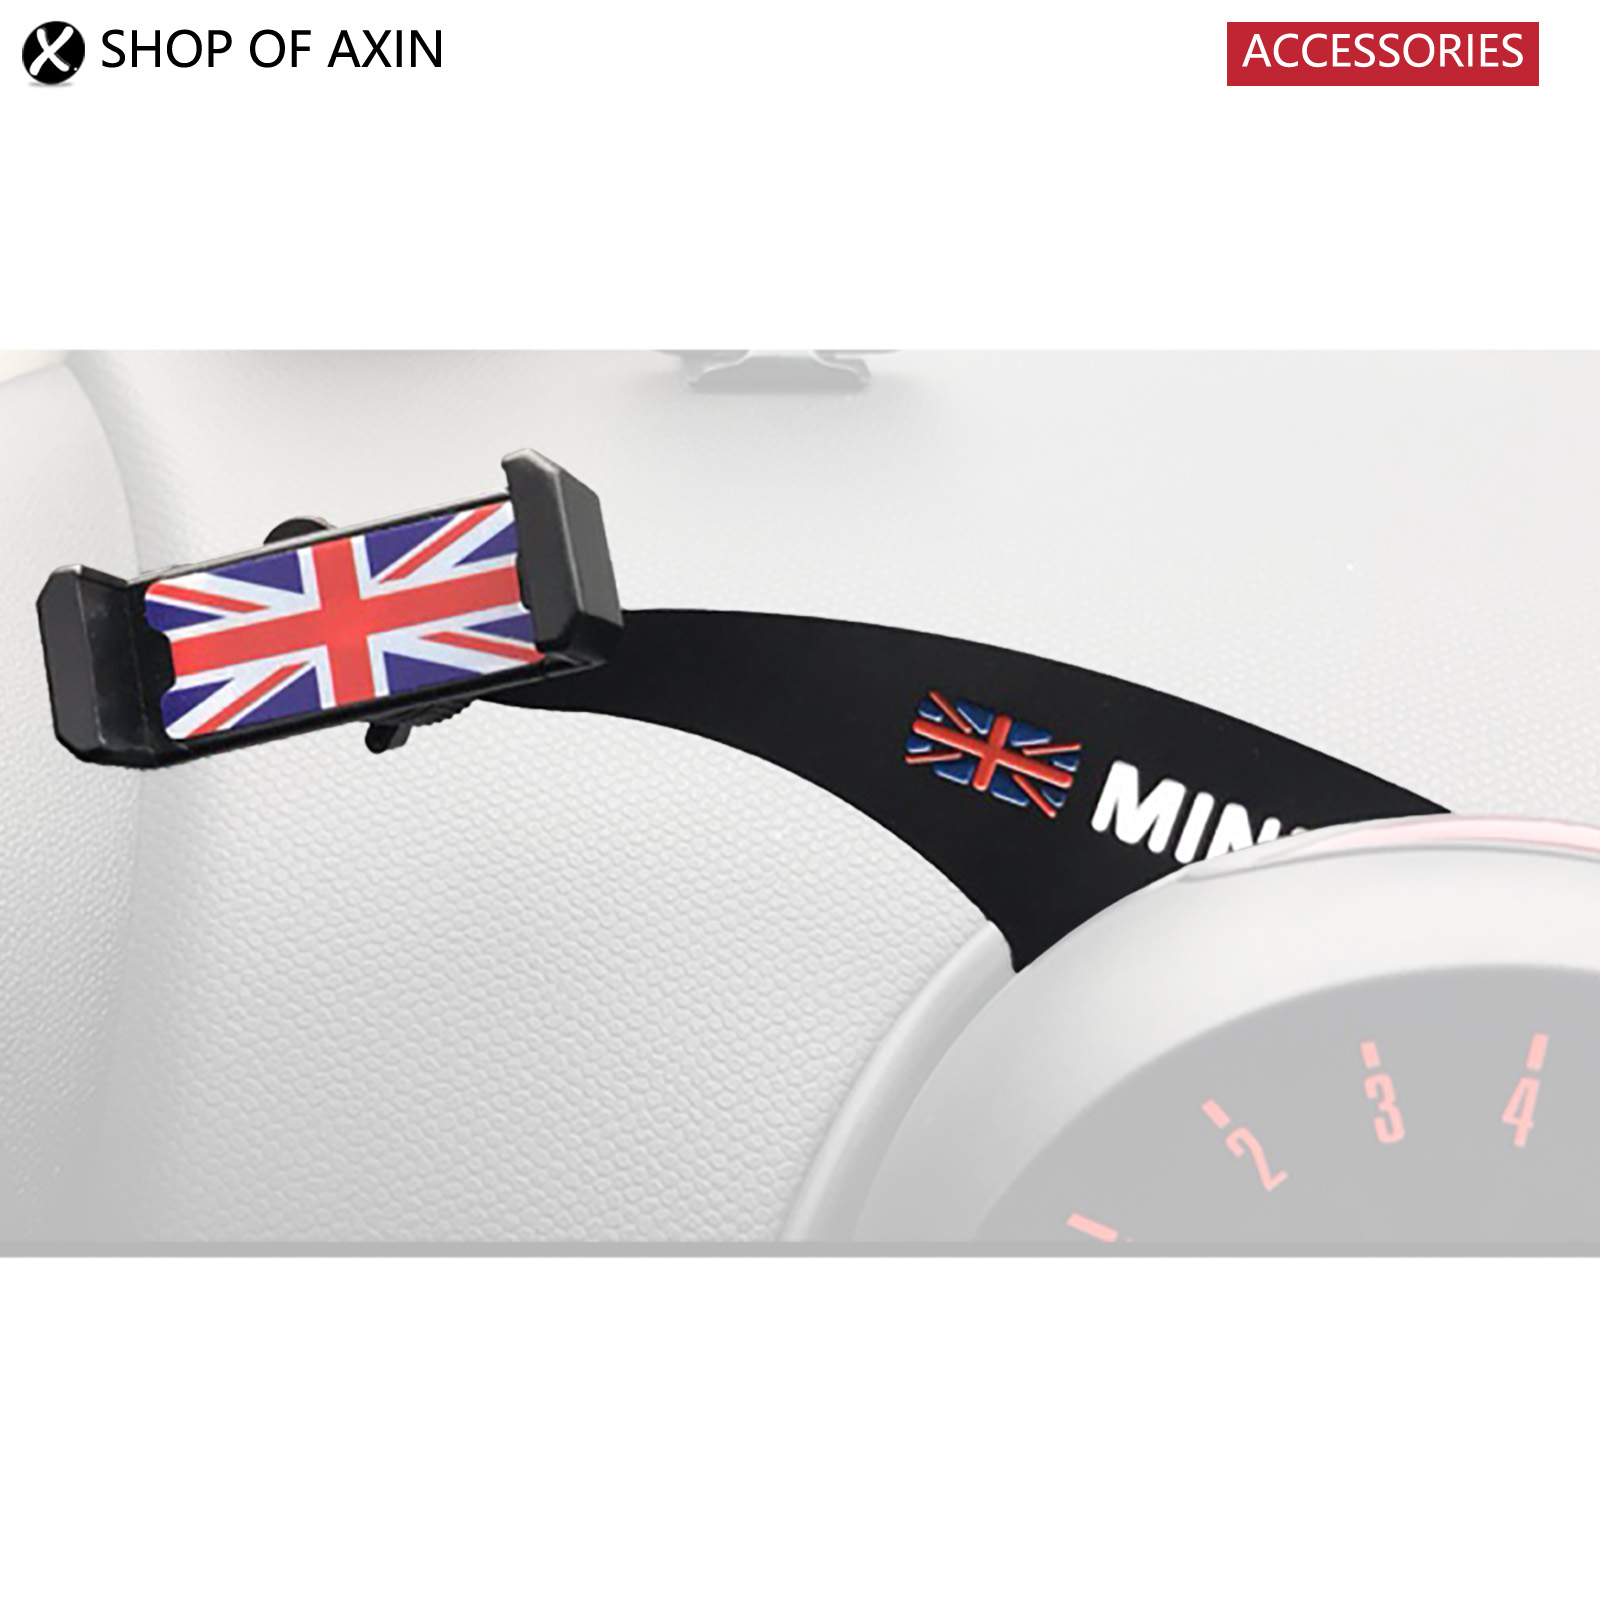 Mobile phones Holder Bracket Wide range of angle adjustment rotating For MINI cooper Countryman R55 R56 R60 R61 F54 F55 F56 F60 1pair union jack car side door skirt decal sticker decor for mini cooper f54 f55 f56 f60 r55 r56 r60 r61 car styling accessories